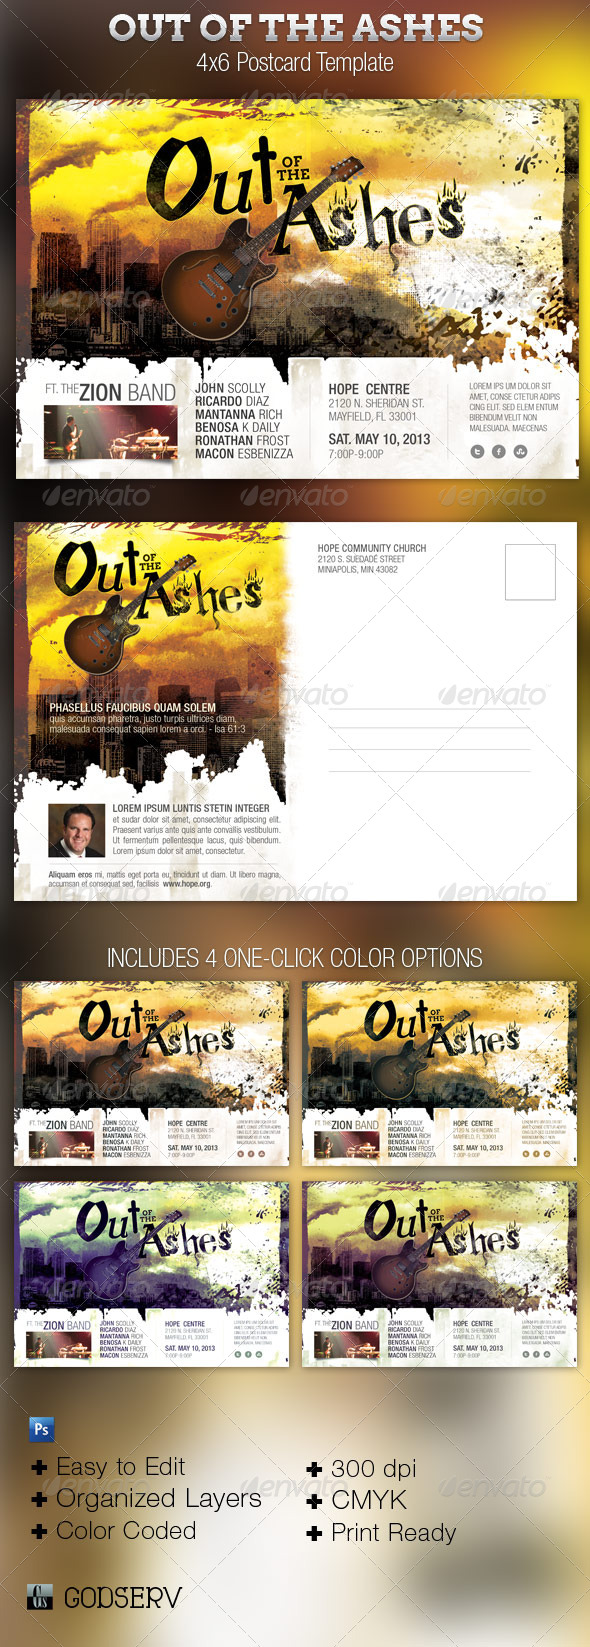 Out of The Ashes Flyer and Postcard Template - Church Flyers